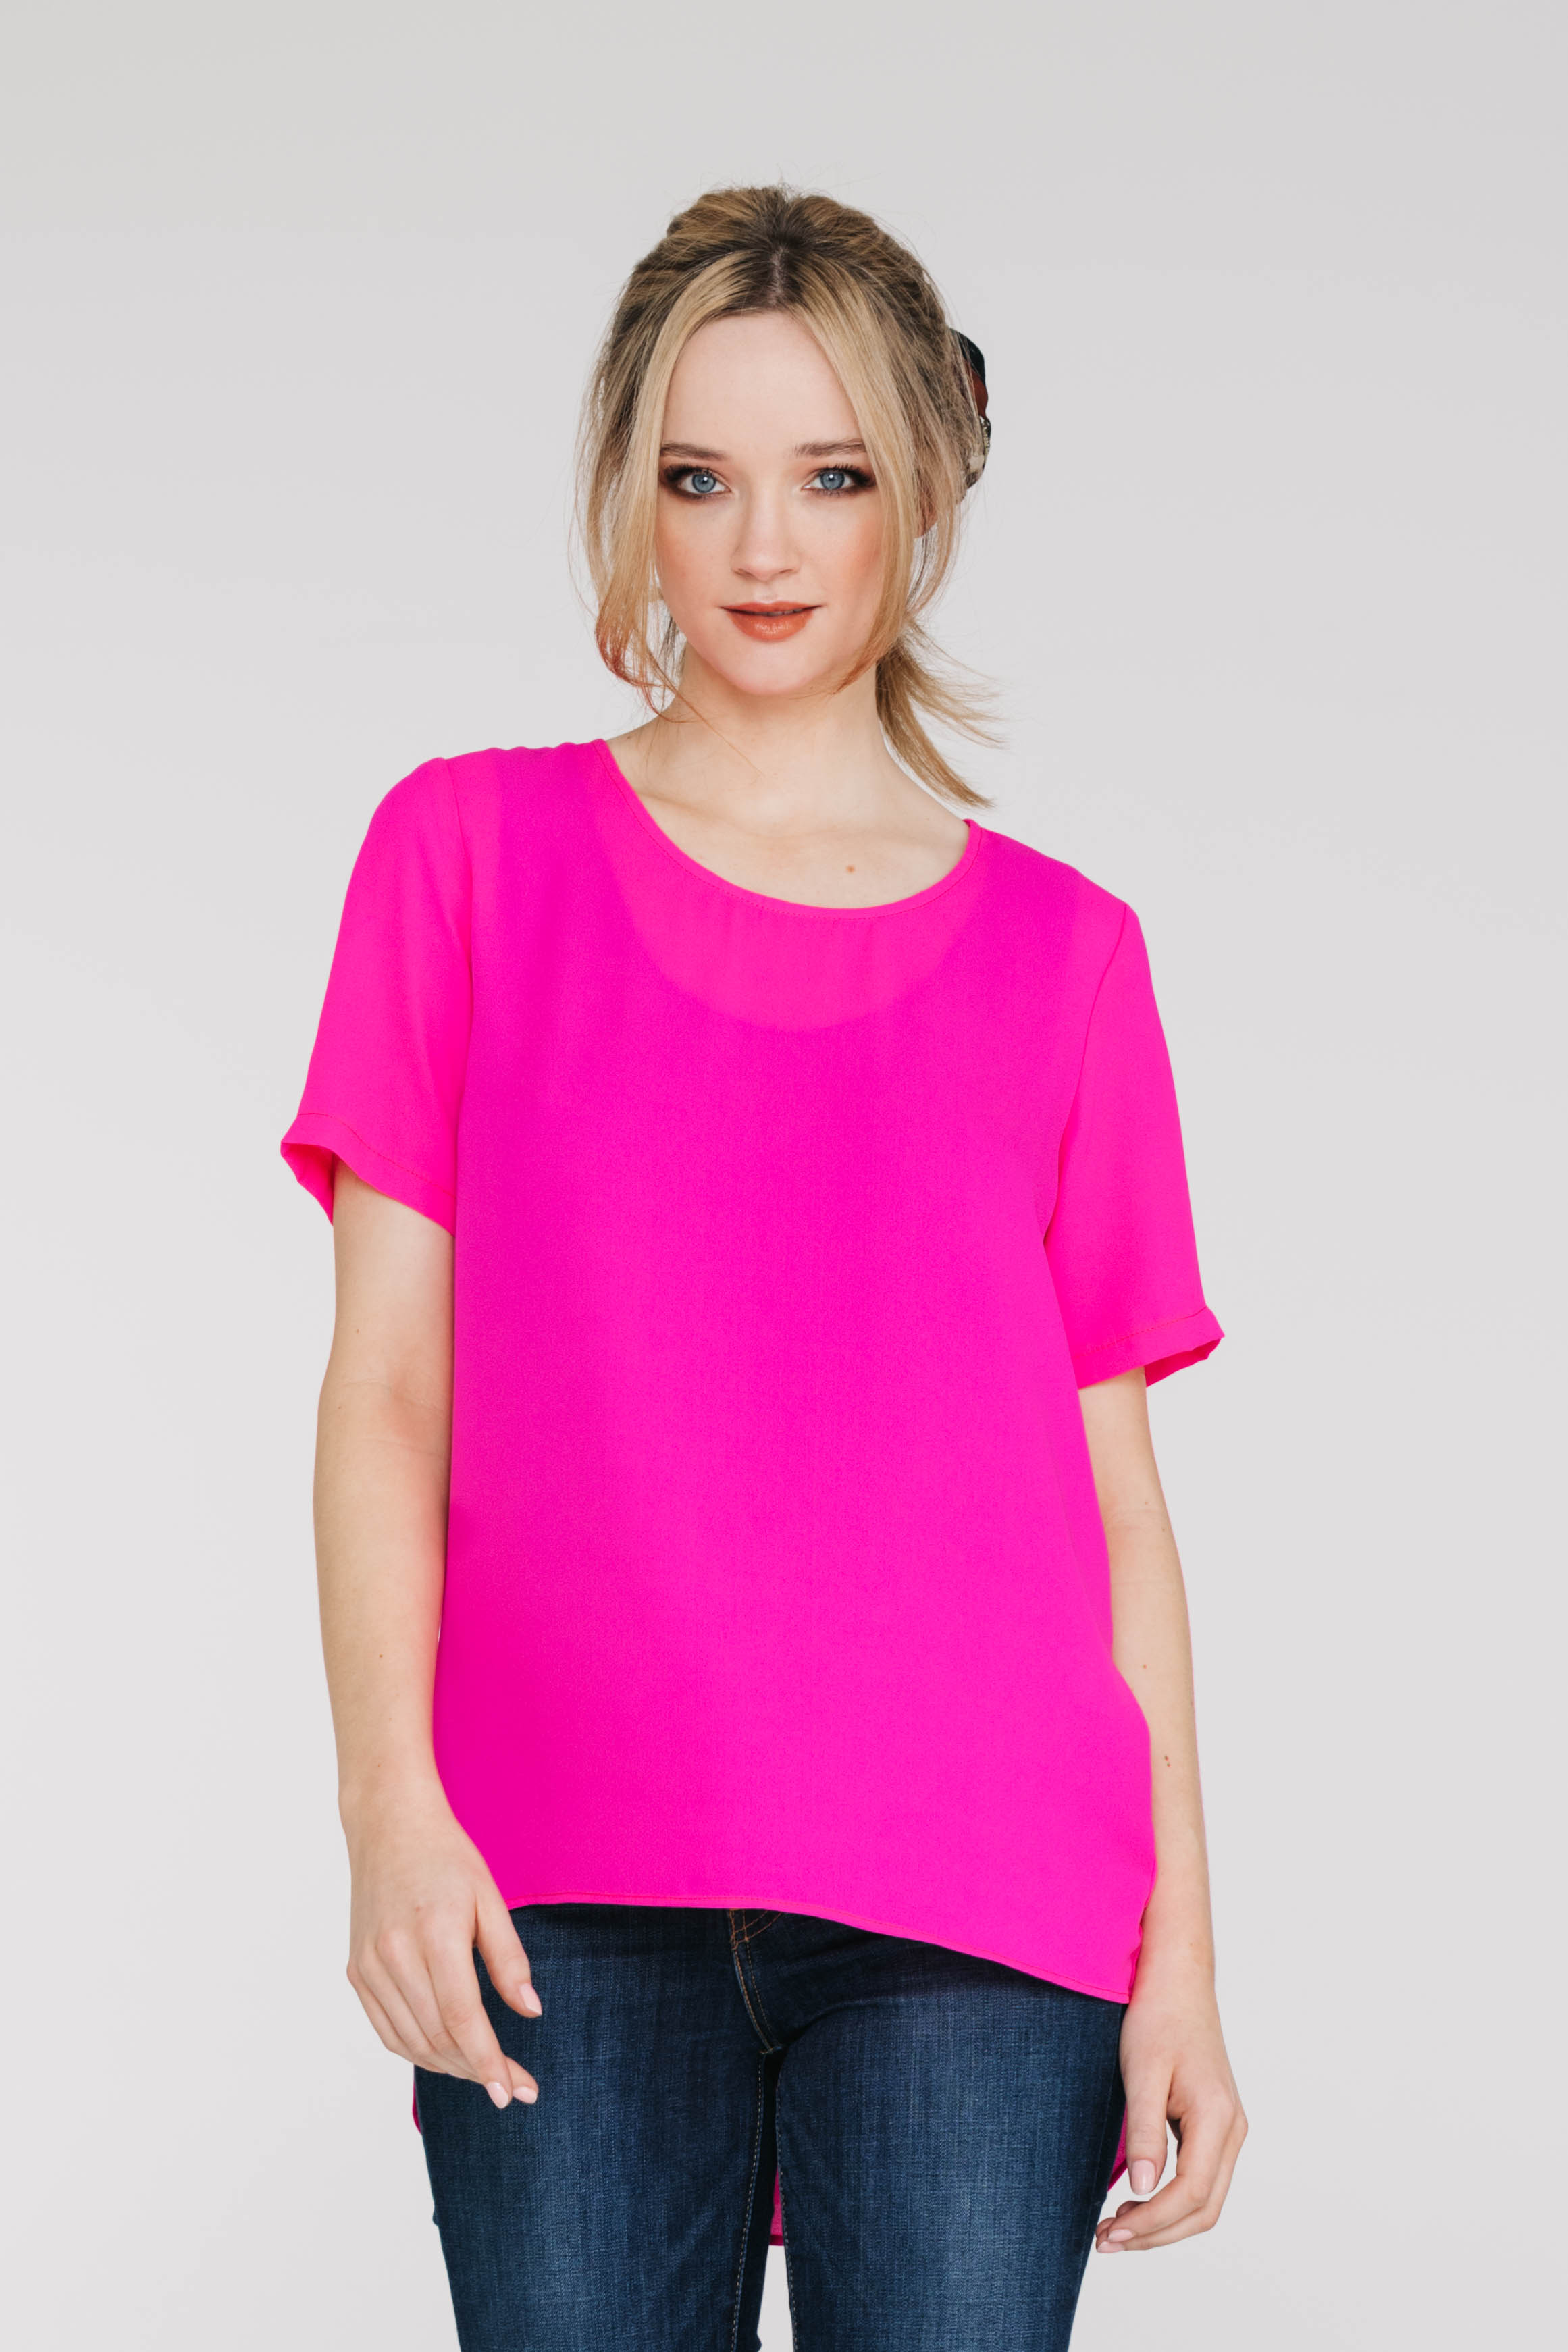 New Tux Tee 5173PA Hot Pink